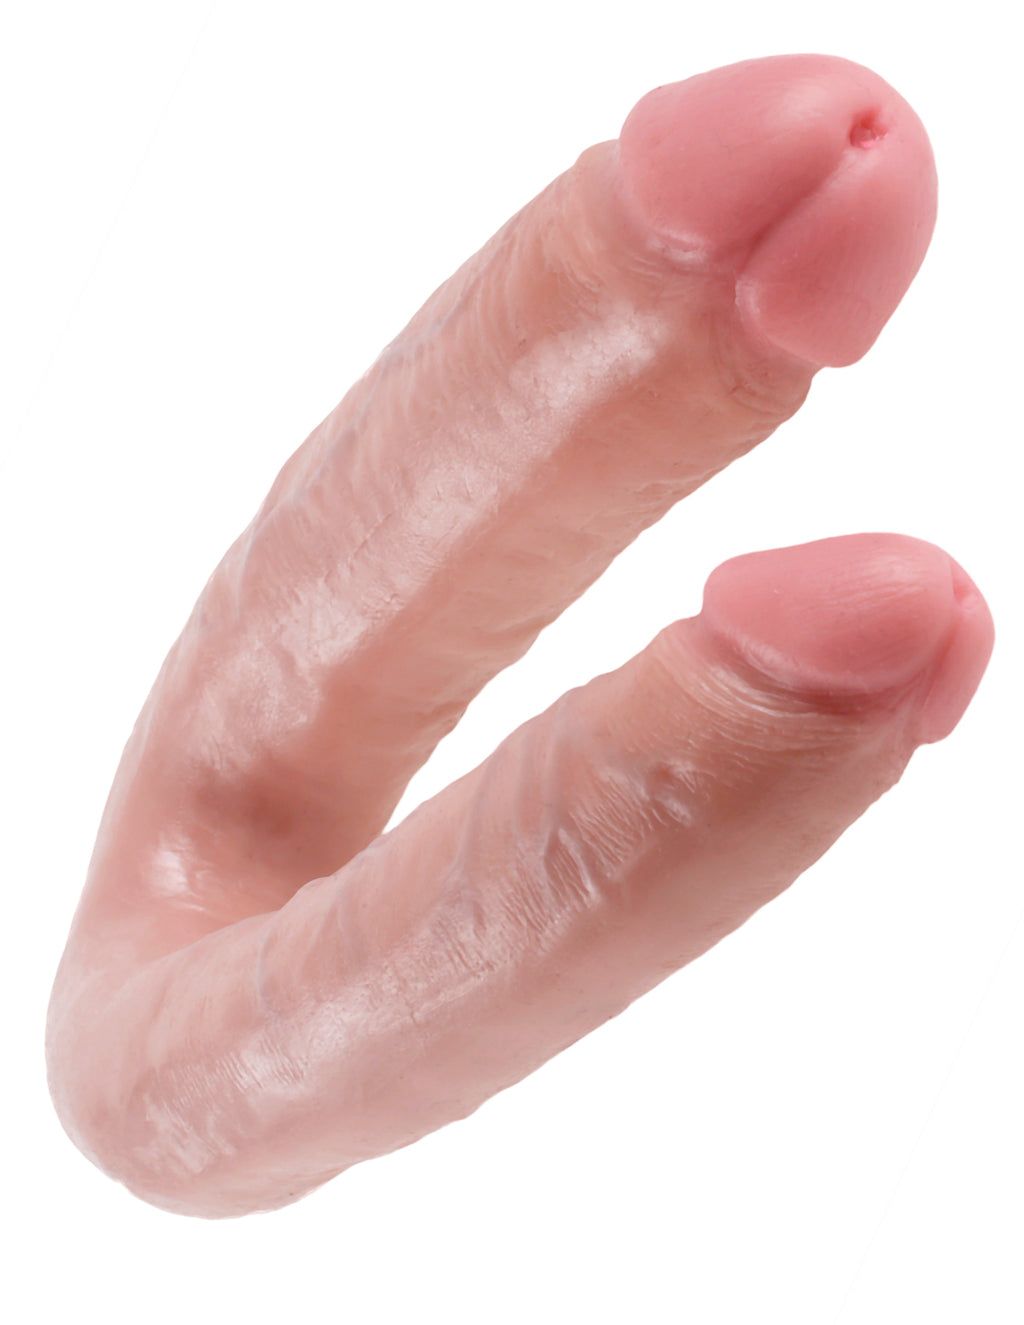 King Cock U-Shaped Large Double Trouble Flesh | Dildos, Vibrator, Realistic Dildos, Sex Toys For Women, Sex Toys, Adult Toys | My Sex Shop